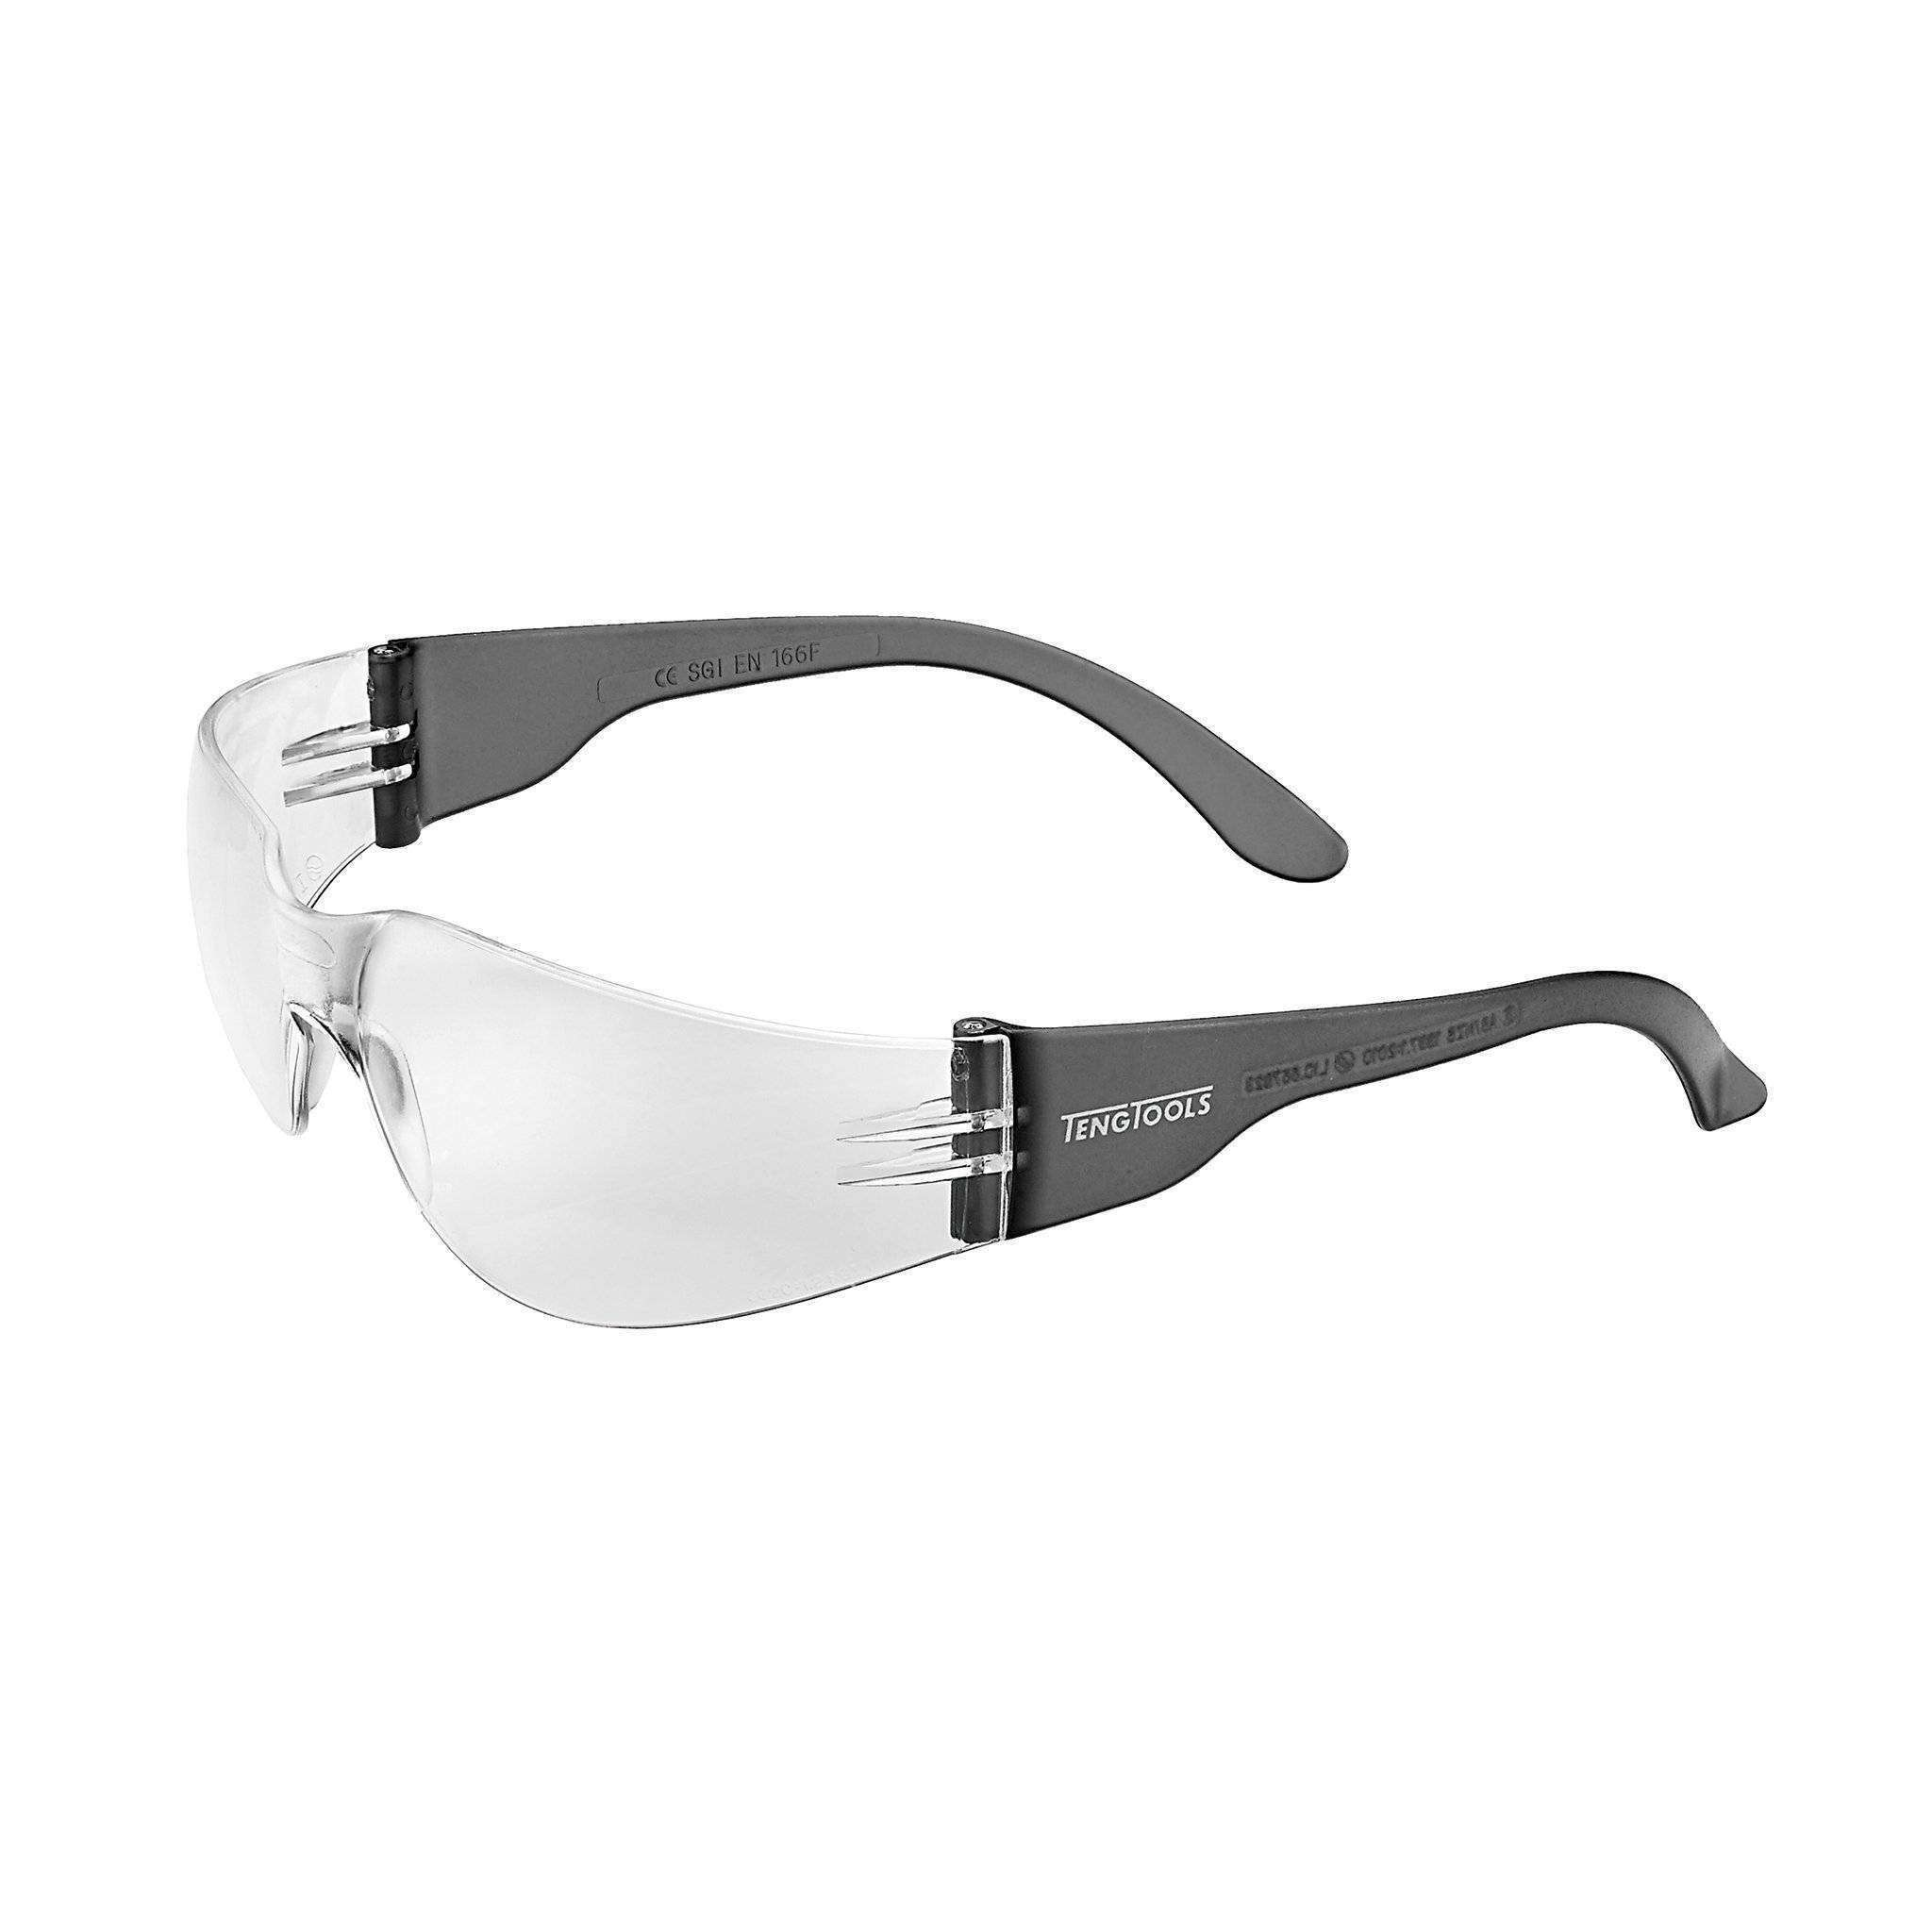 SAFETY GLASSES CLEAR LENS SCRATCH RESISTANT - Teng Tools USA